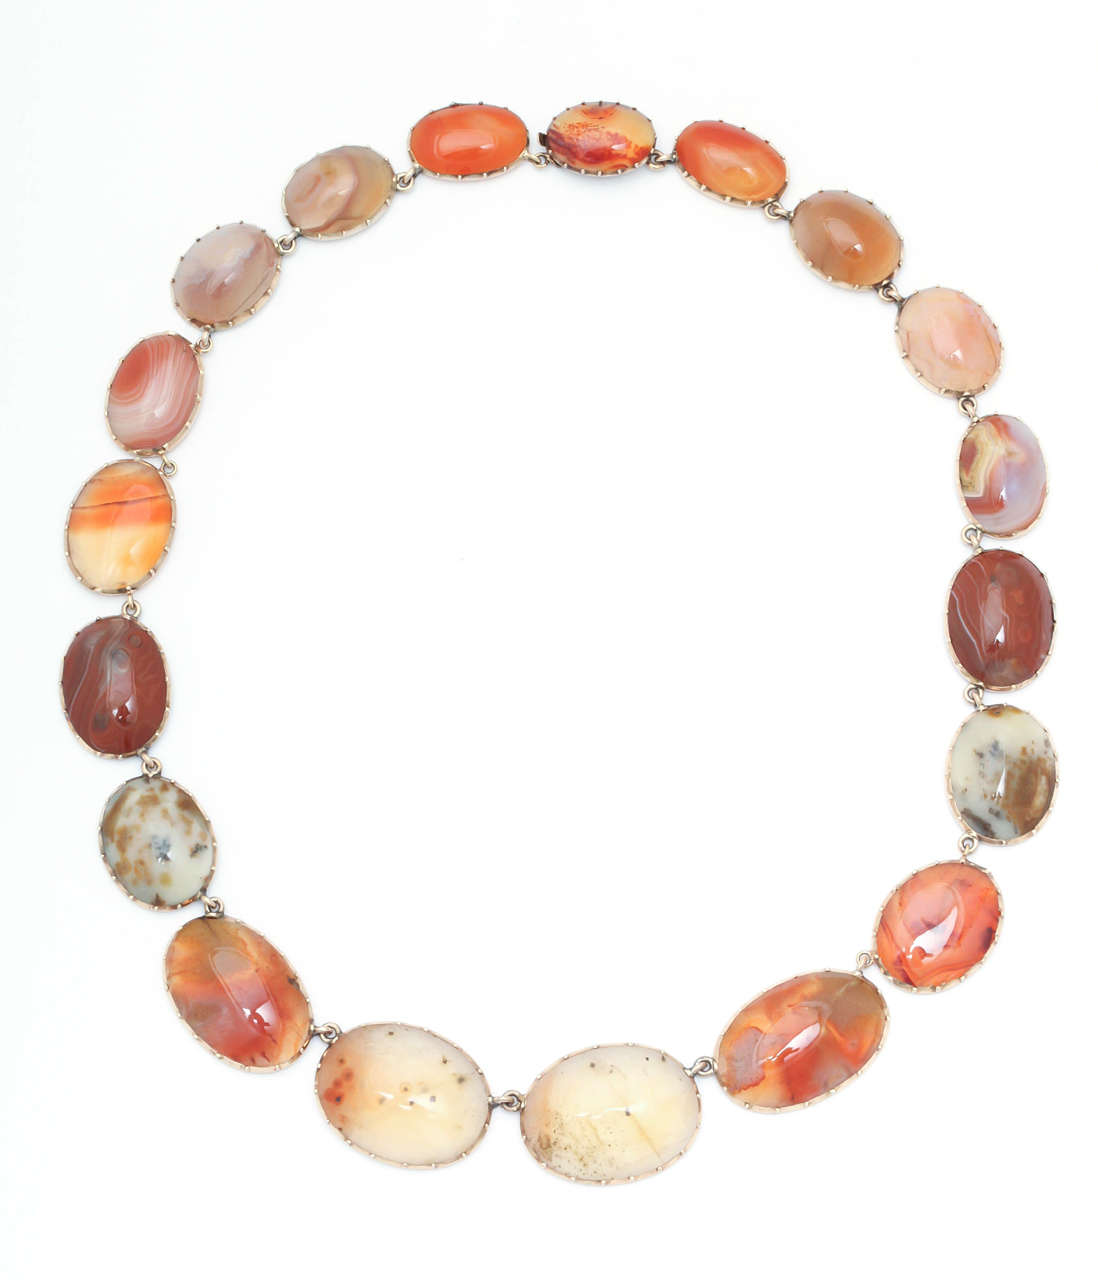 Sunrise-Sunset Color in a Victorian Natural Agate Necklace and Earrings In Excellent Condition For Sale In Hastings on Hudson, NY